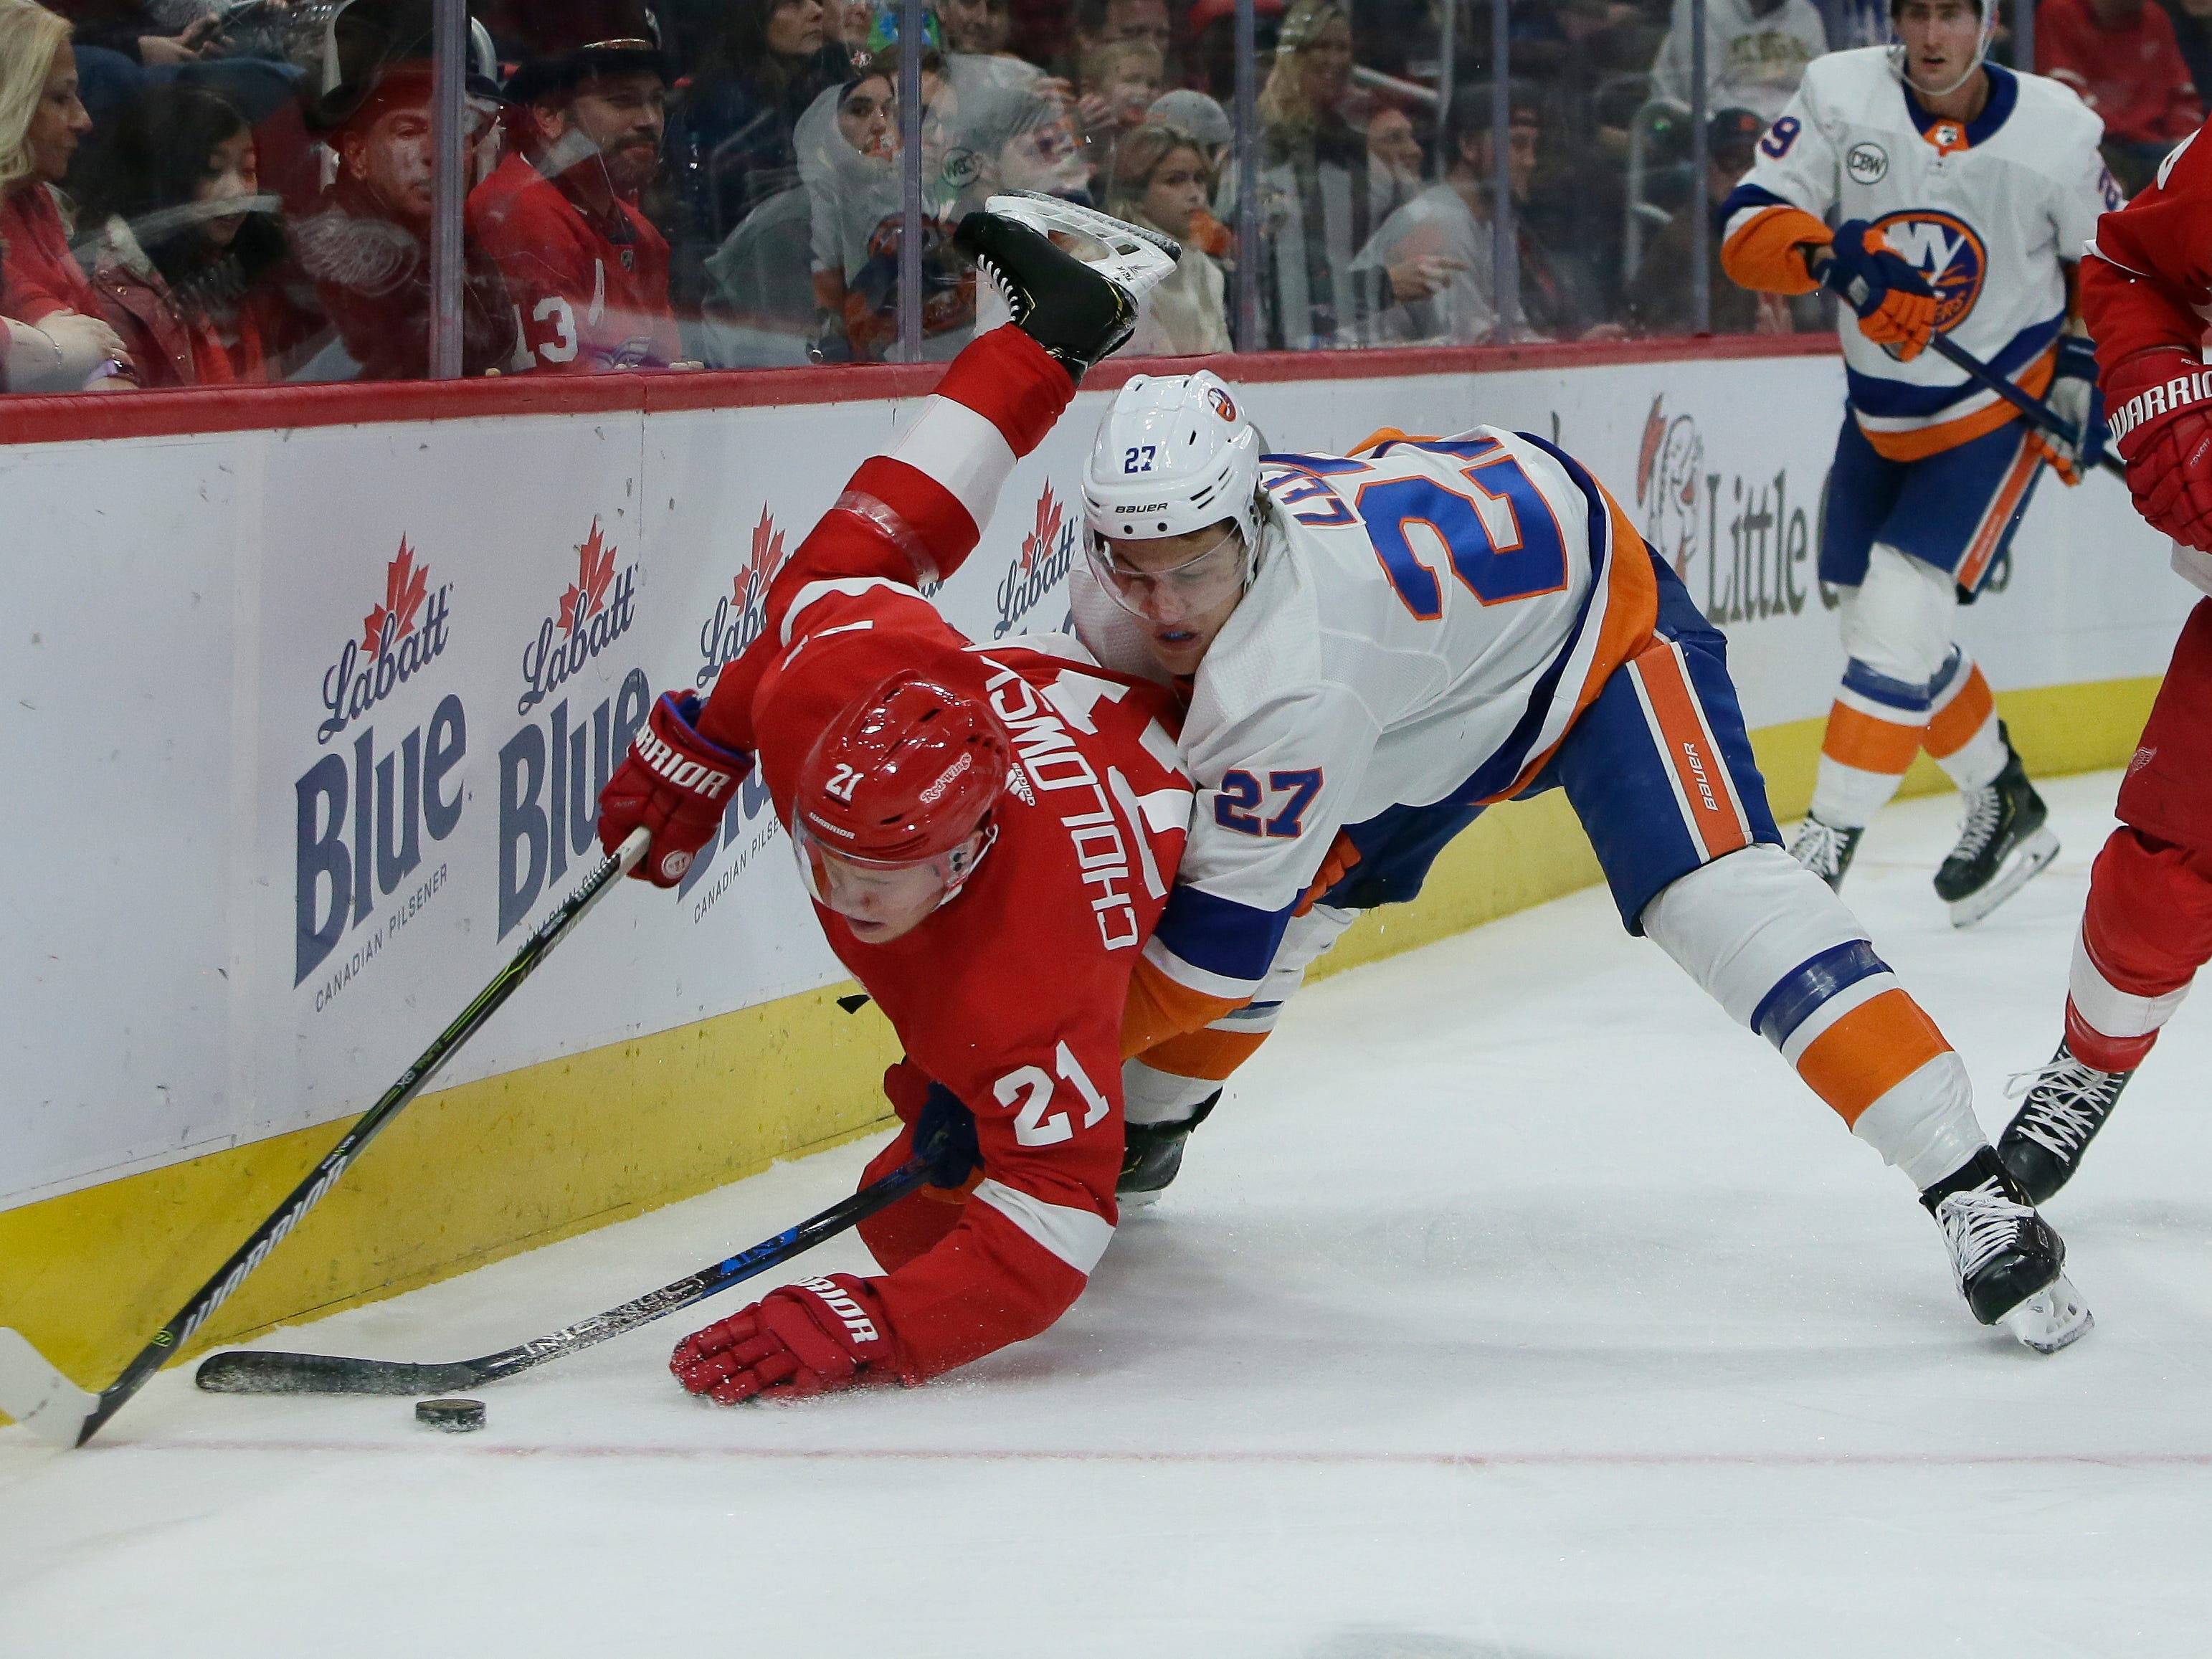 New York Islanders left wing Anders Lee (27) tries to steal the puck from Detroit Red Wings defenseman Dennis Cholowski (21) during the first period.